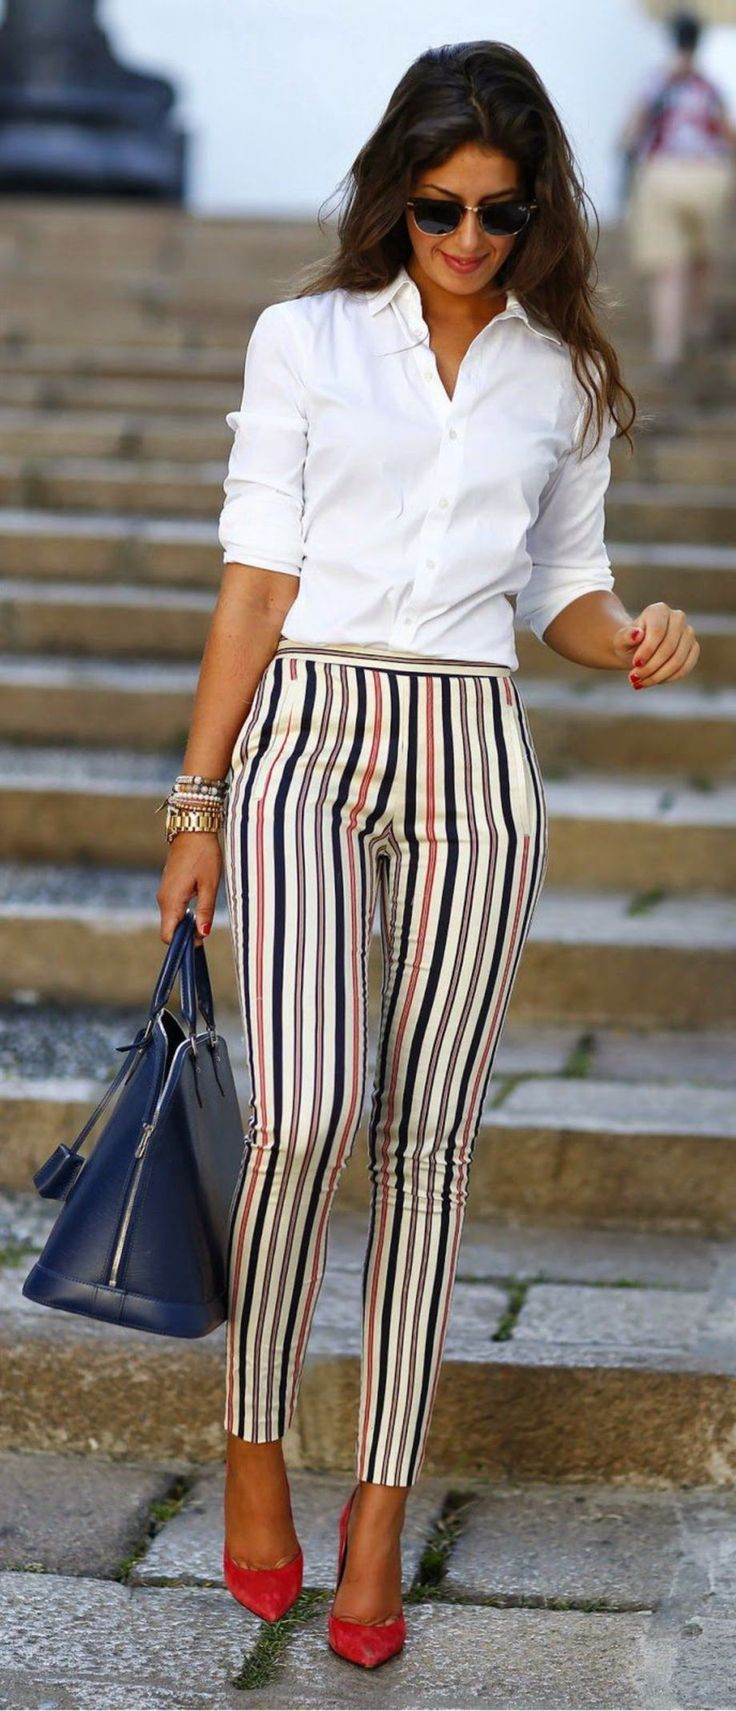 Breathtaking 115 Trendy Work Clothes for Women Ideas from https://www.fashionetter.com/2017/07/08/115-trendy-work-clothes-women-ideas/